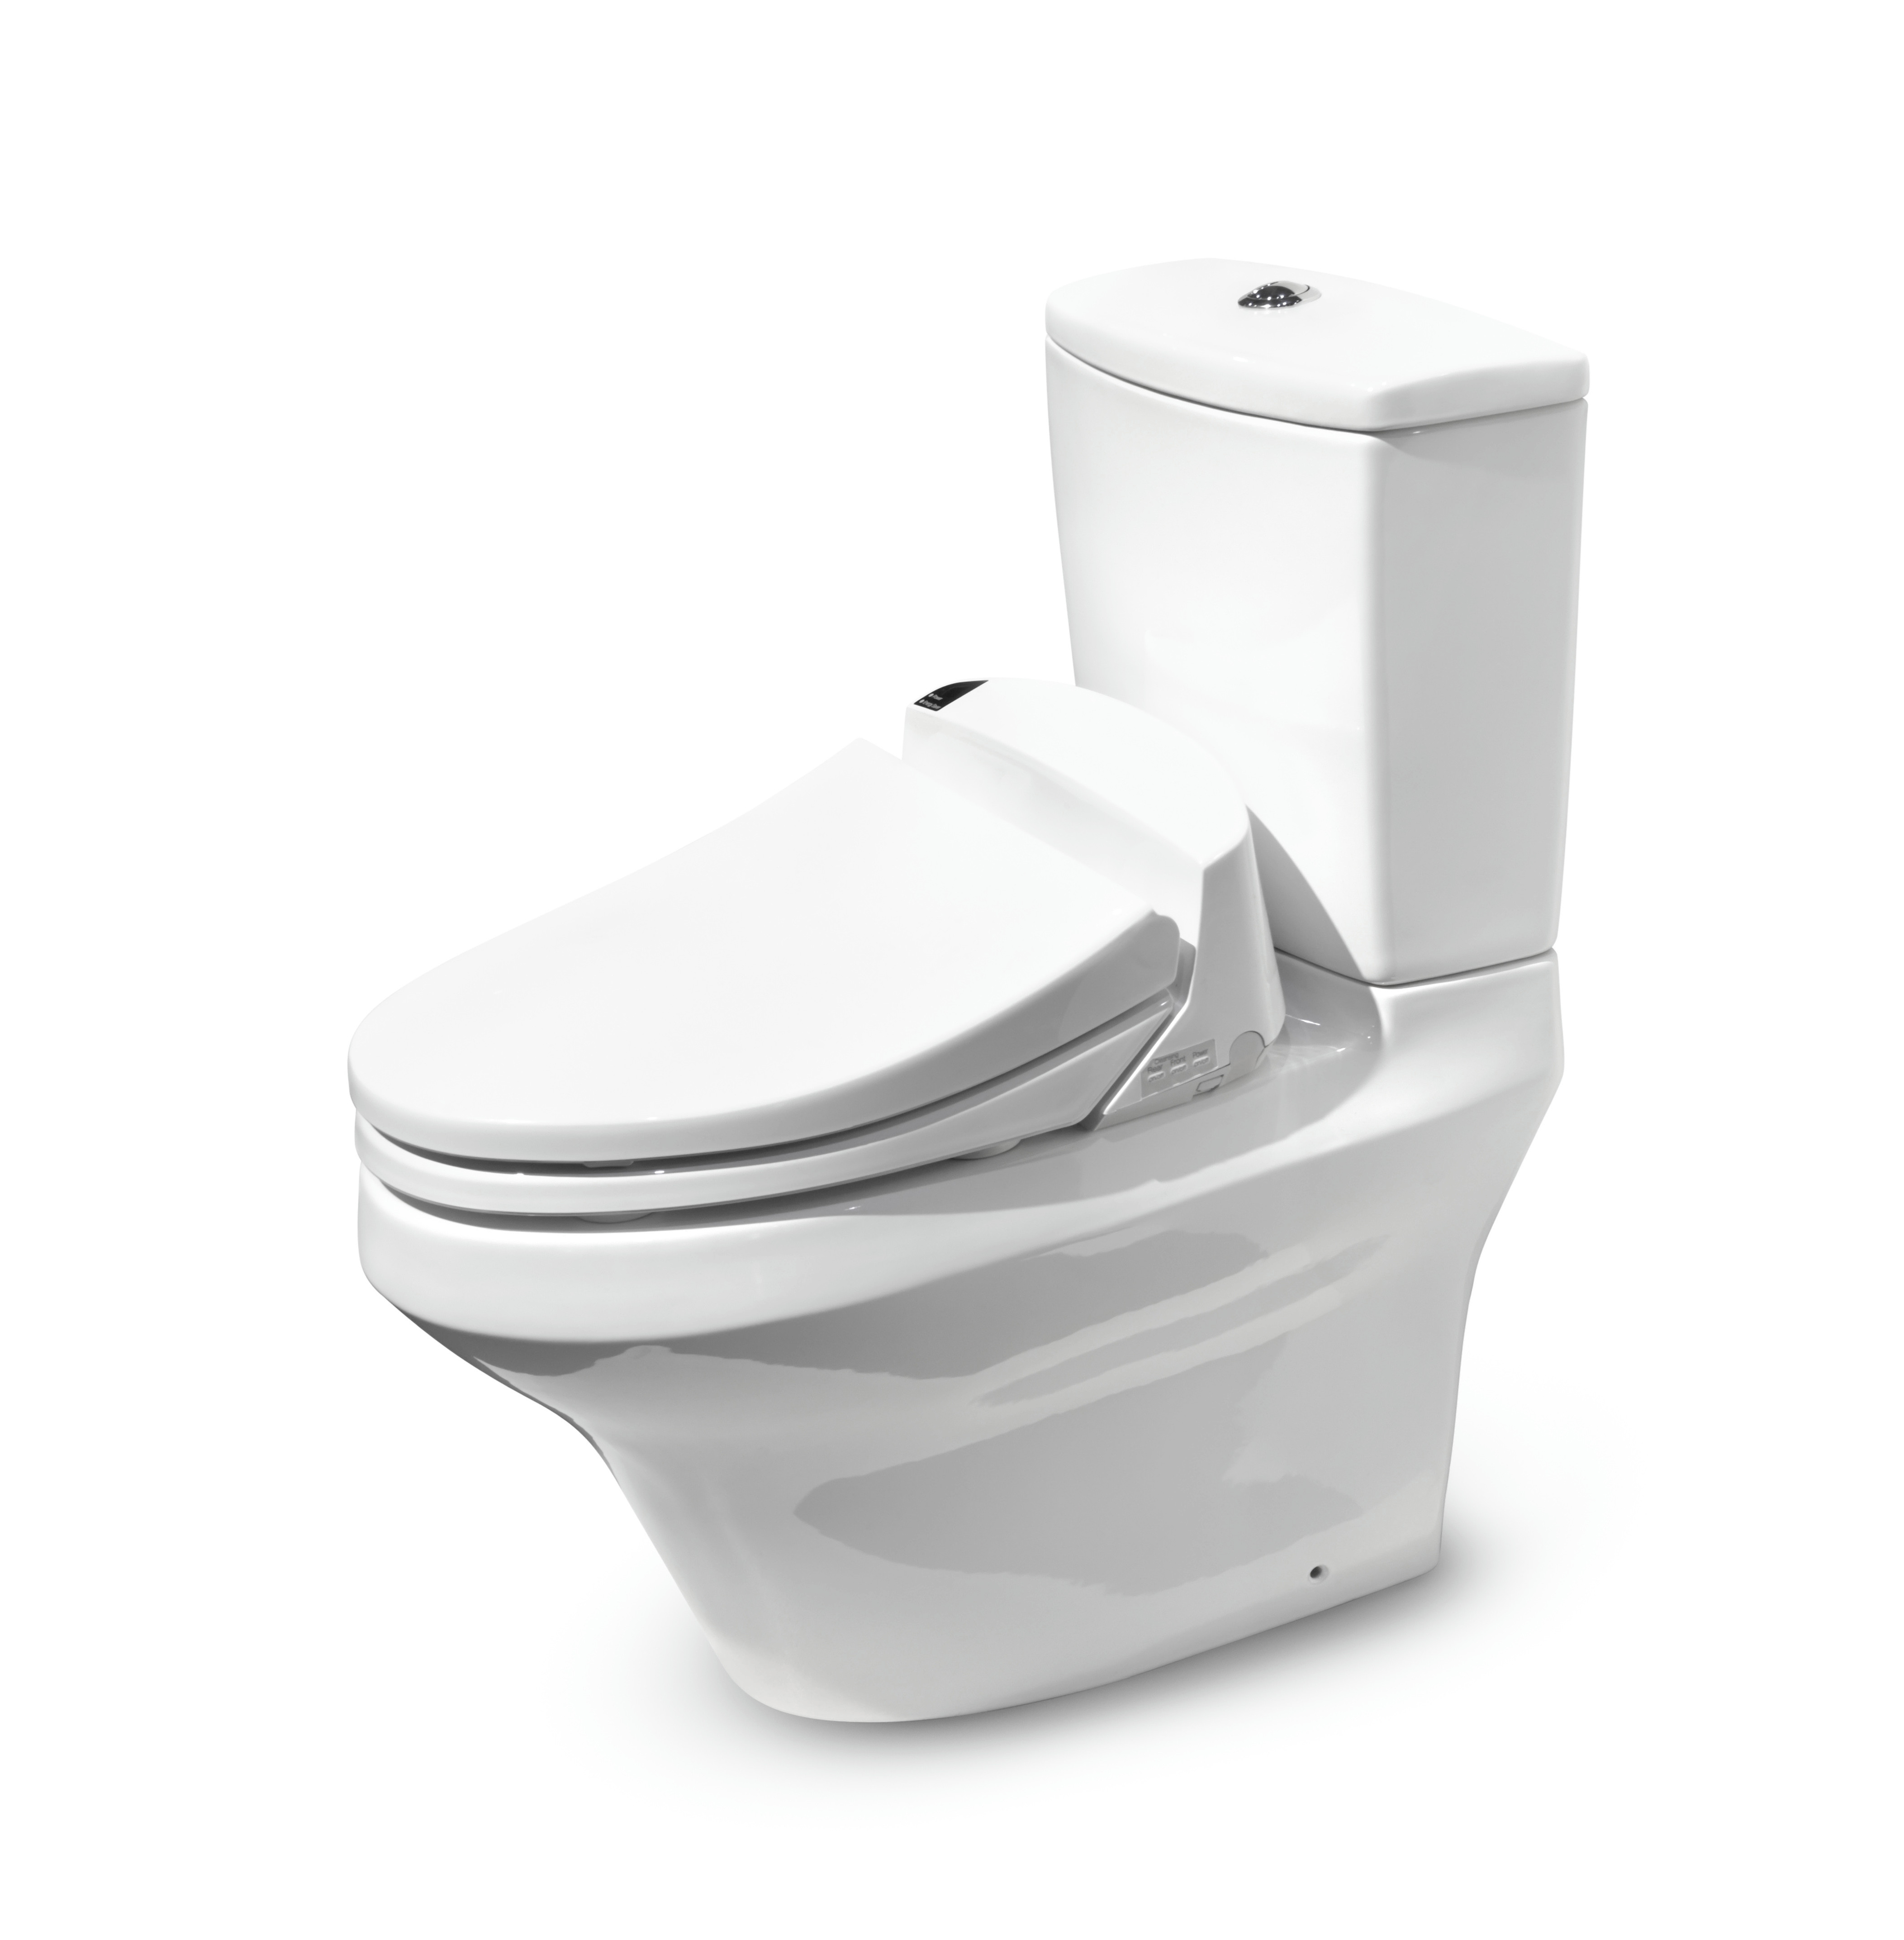 Toto Toilets Problems | Hunker